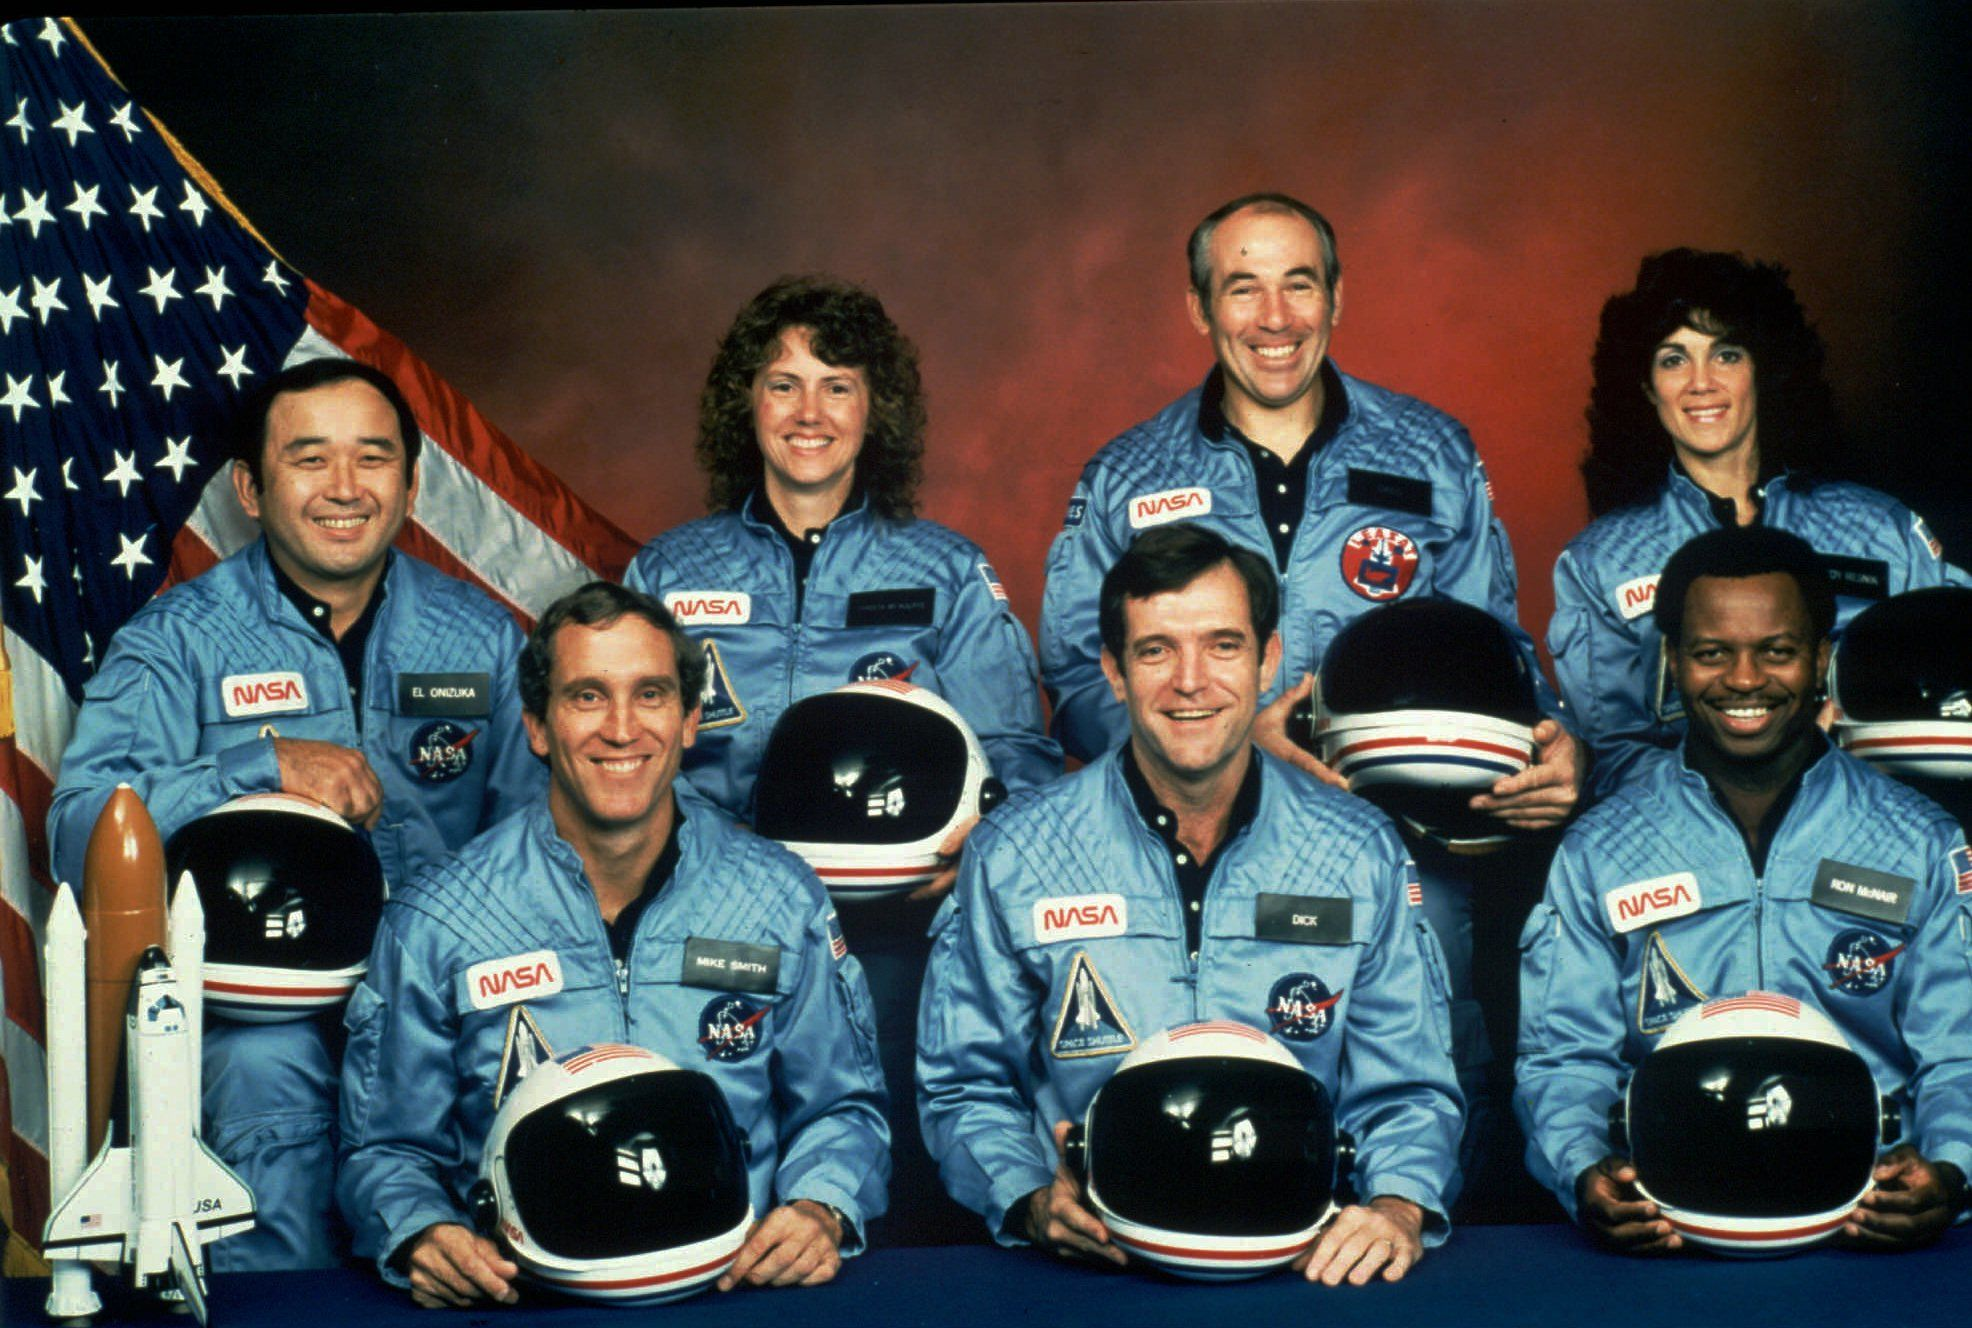 space shuttle challenger 33 years ago - photo #25